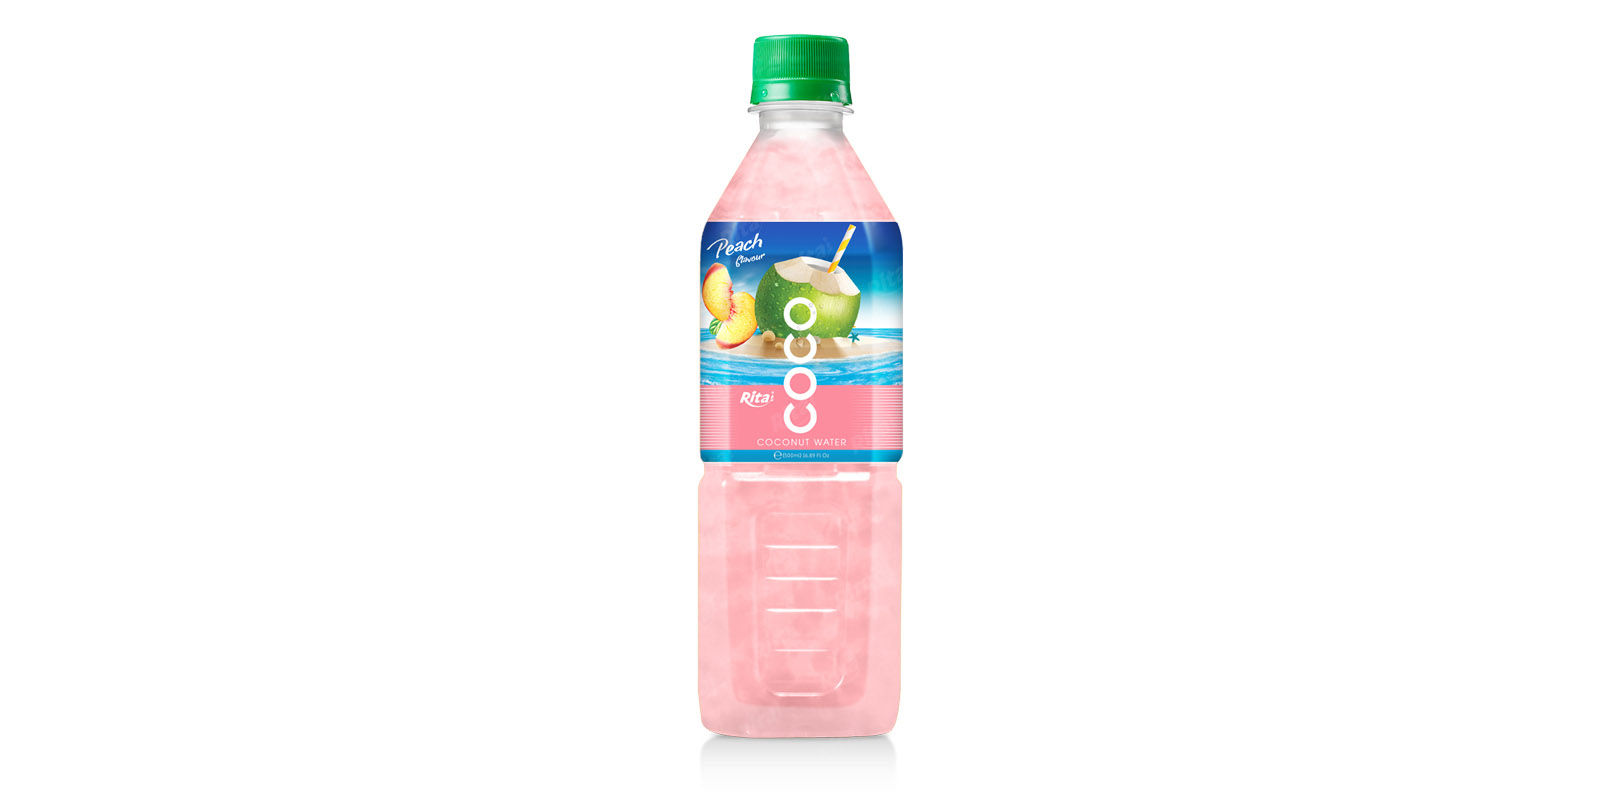 good juice Coconut water with peach flavor 500ml